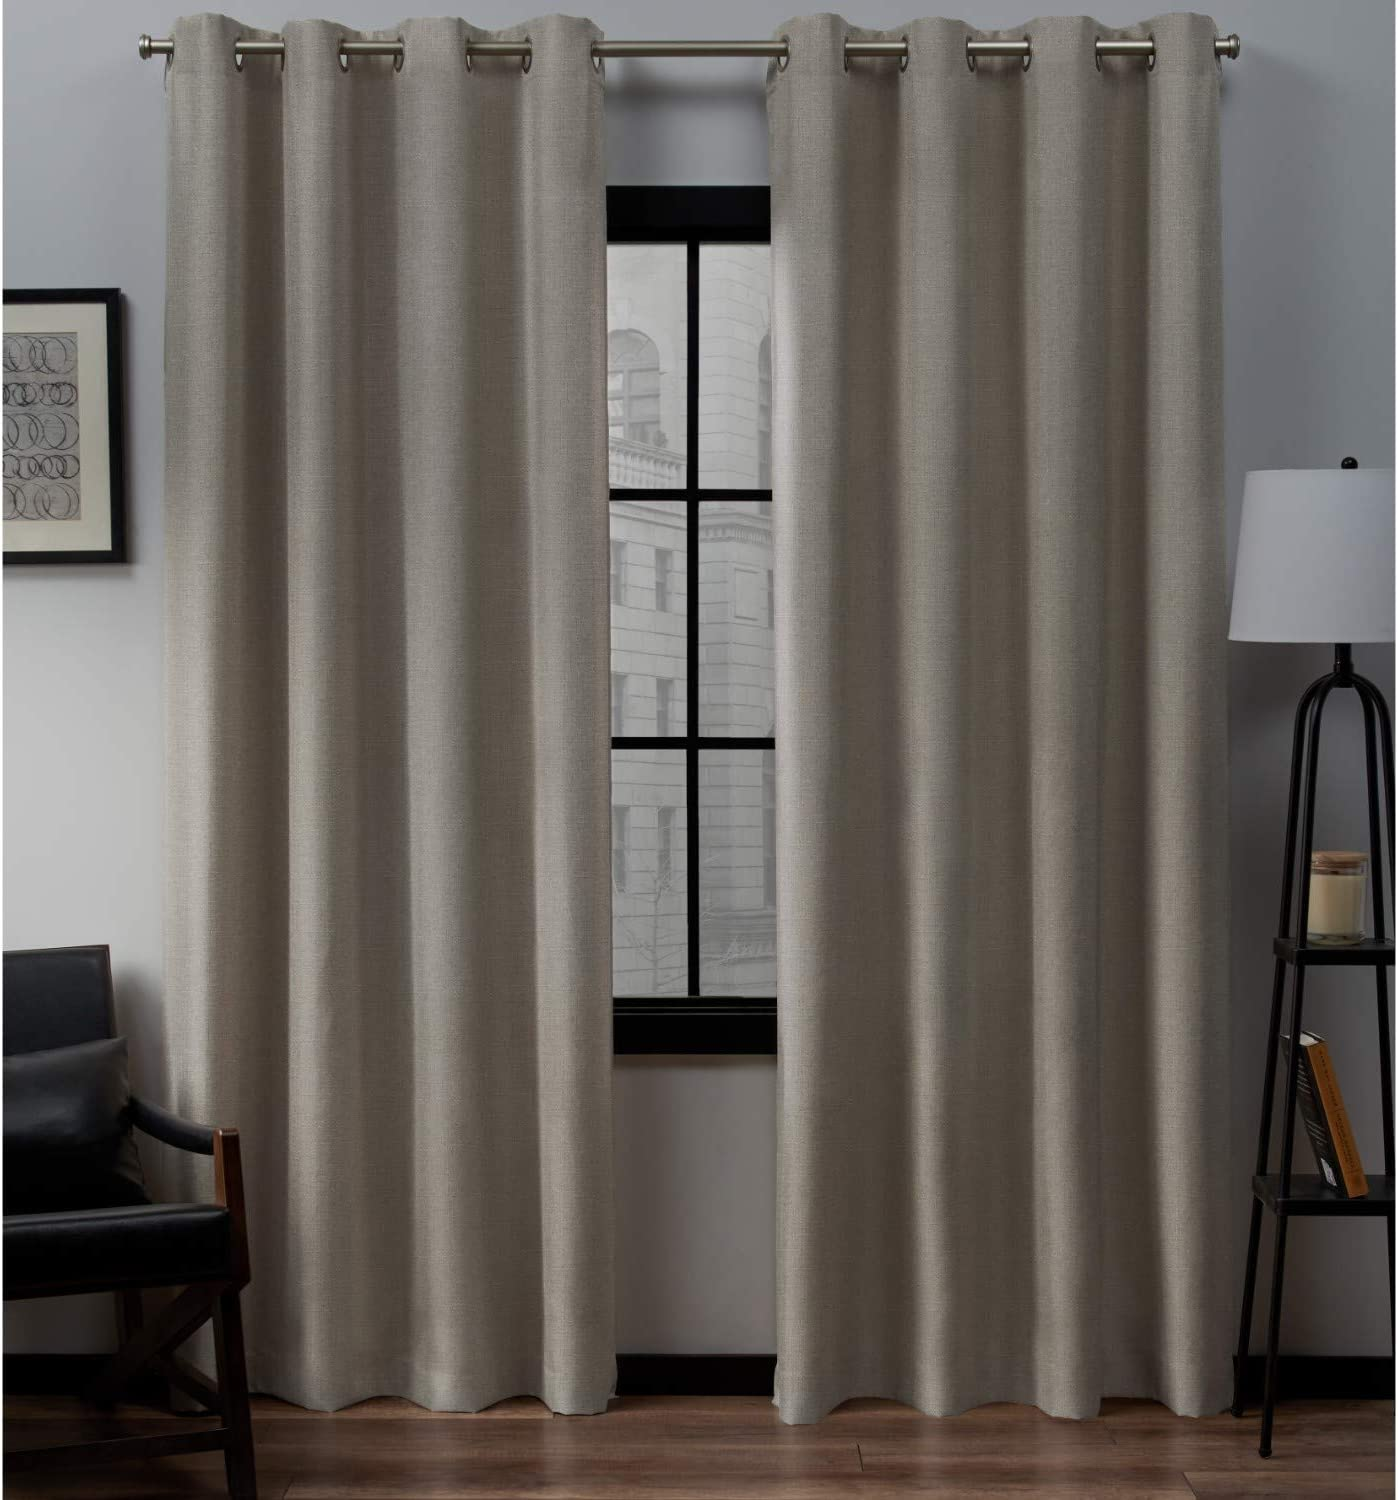 Exclusive Home Curtains Loha Linen Grommet Top Curtain Panel Pair, 52x96, Beige